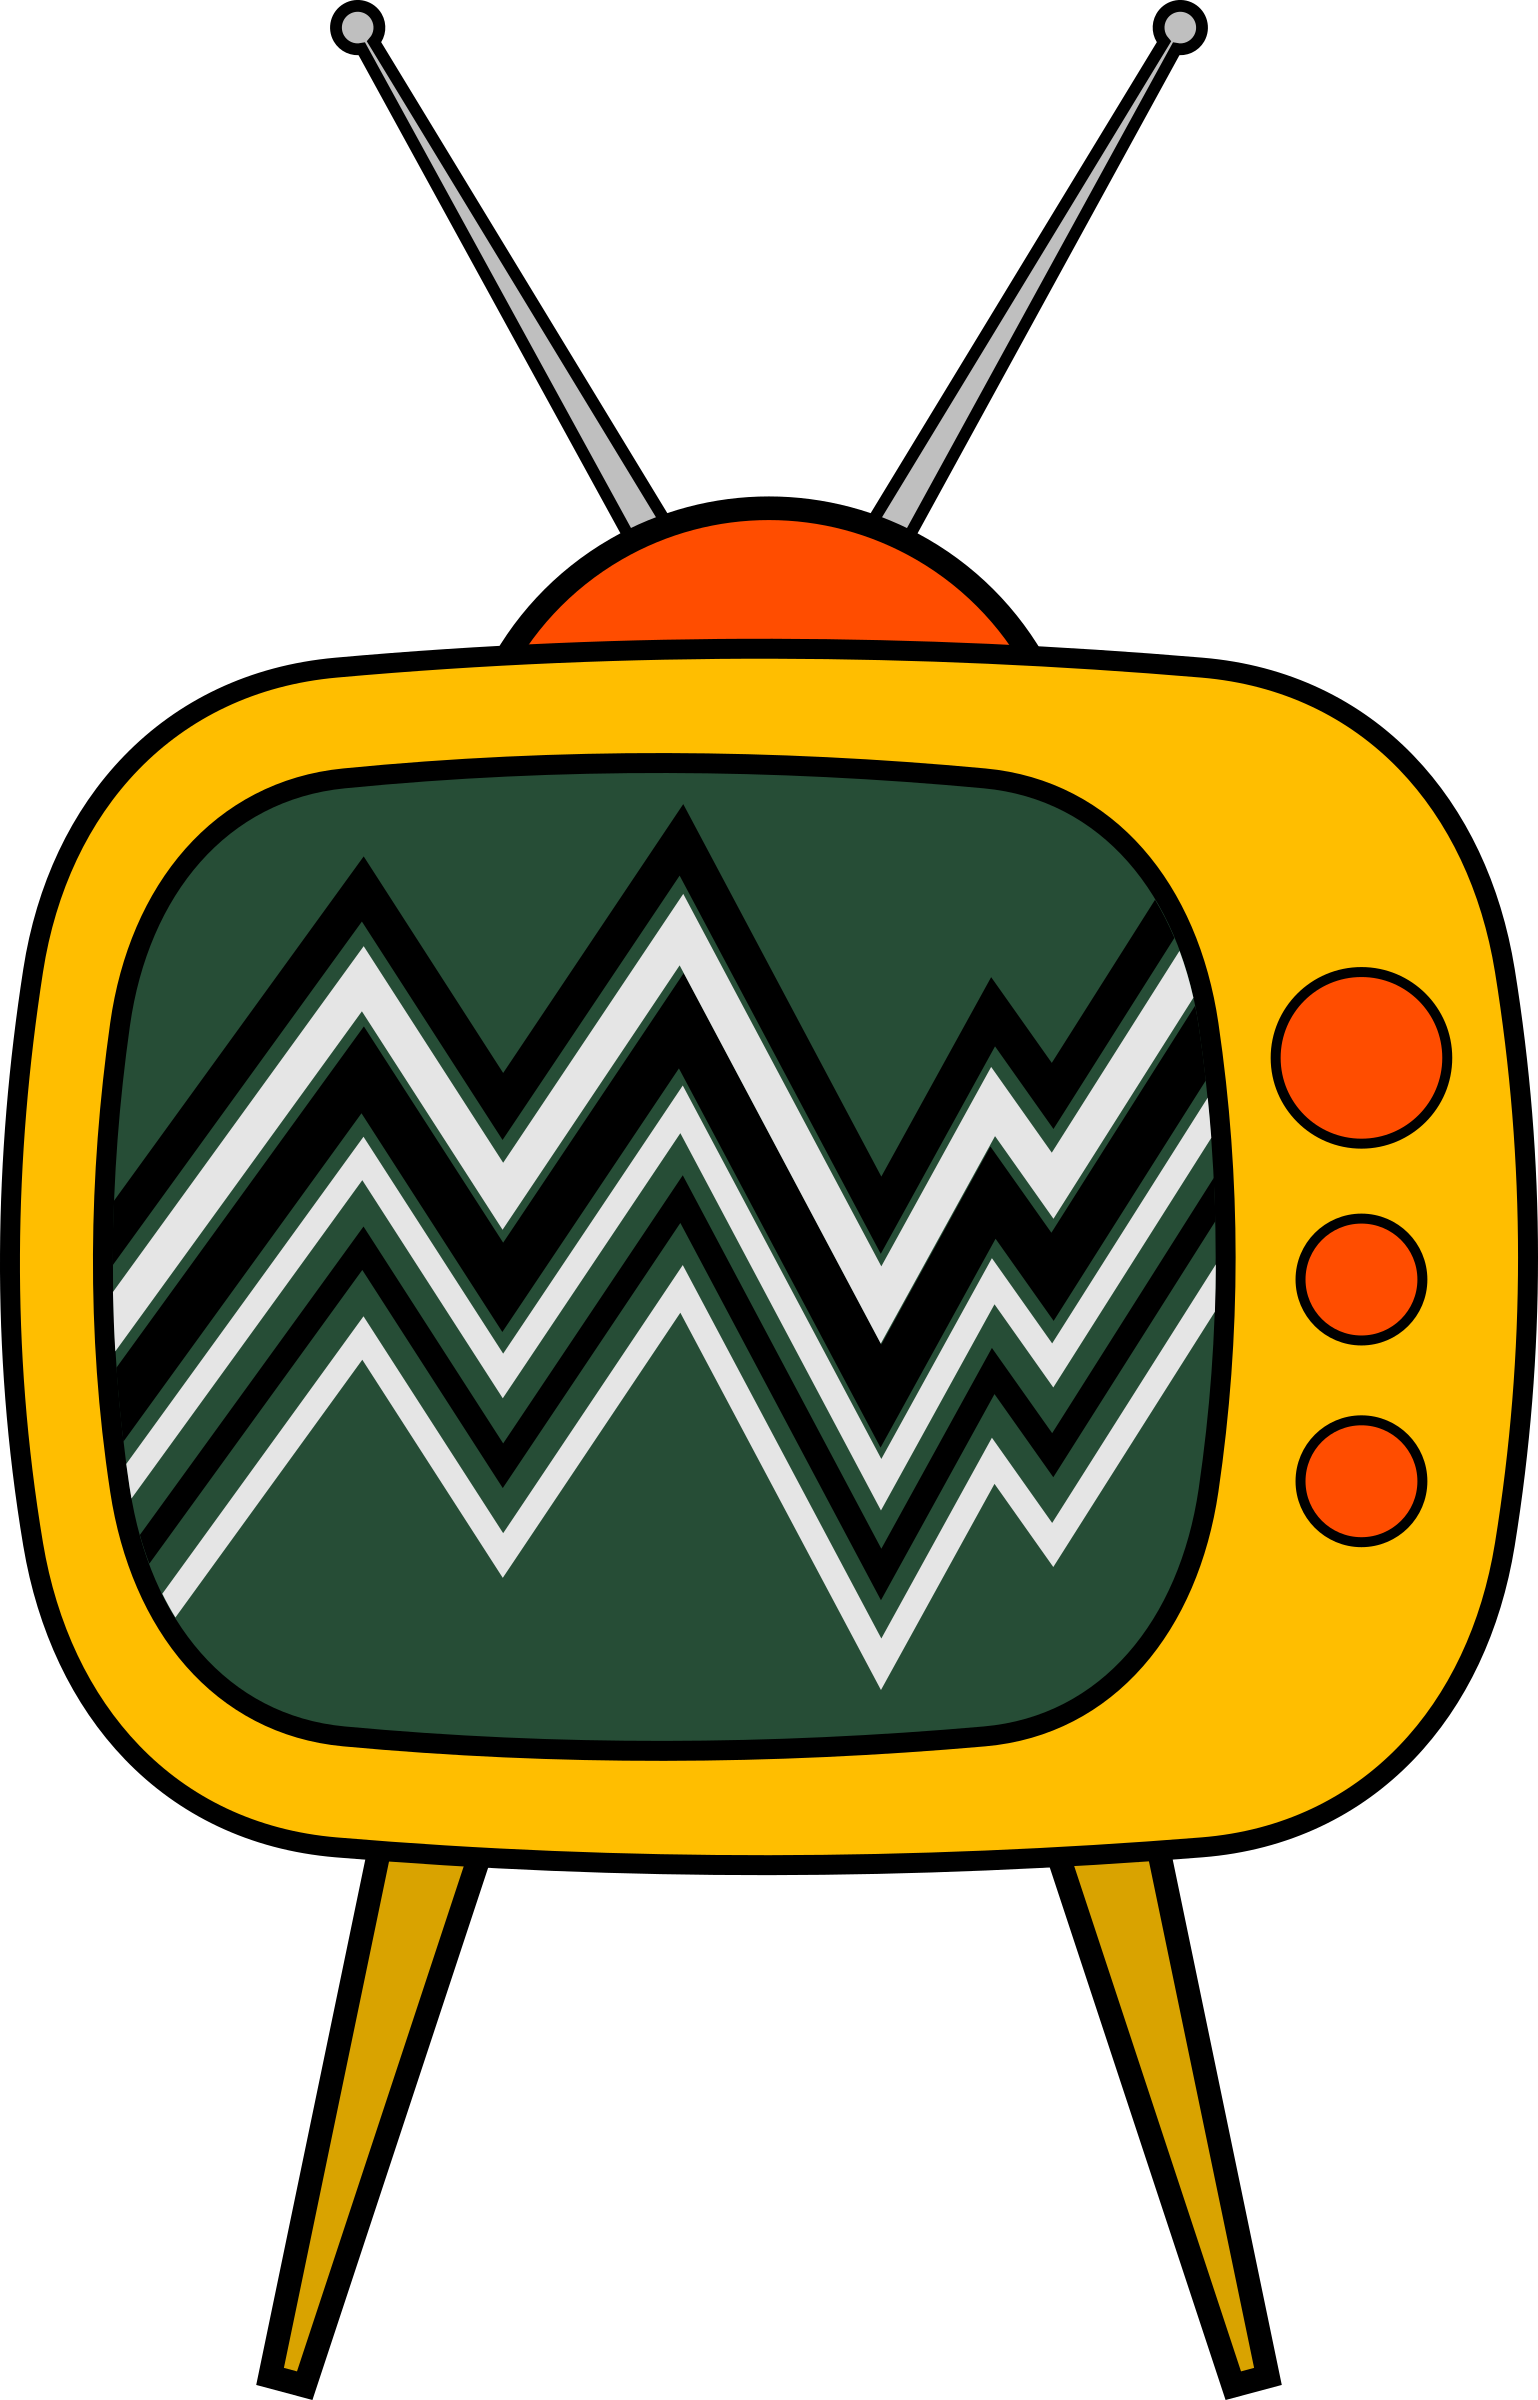 Tv cartoon png. Old icons free and